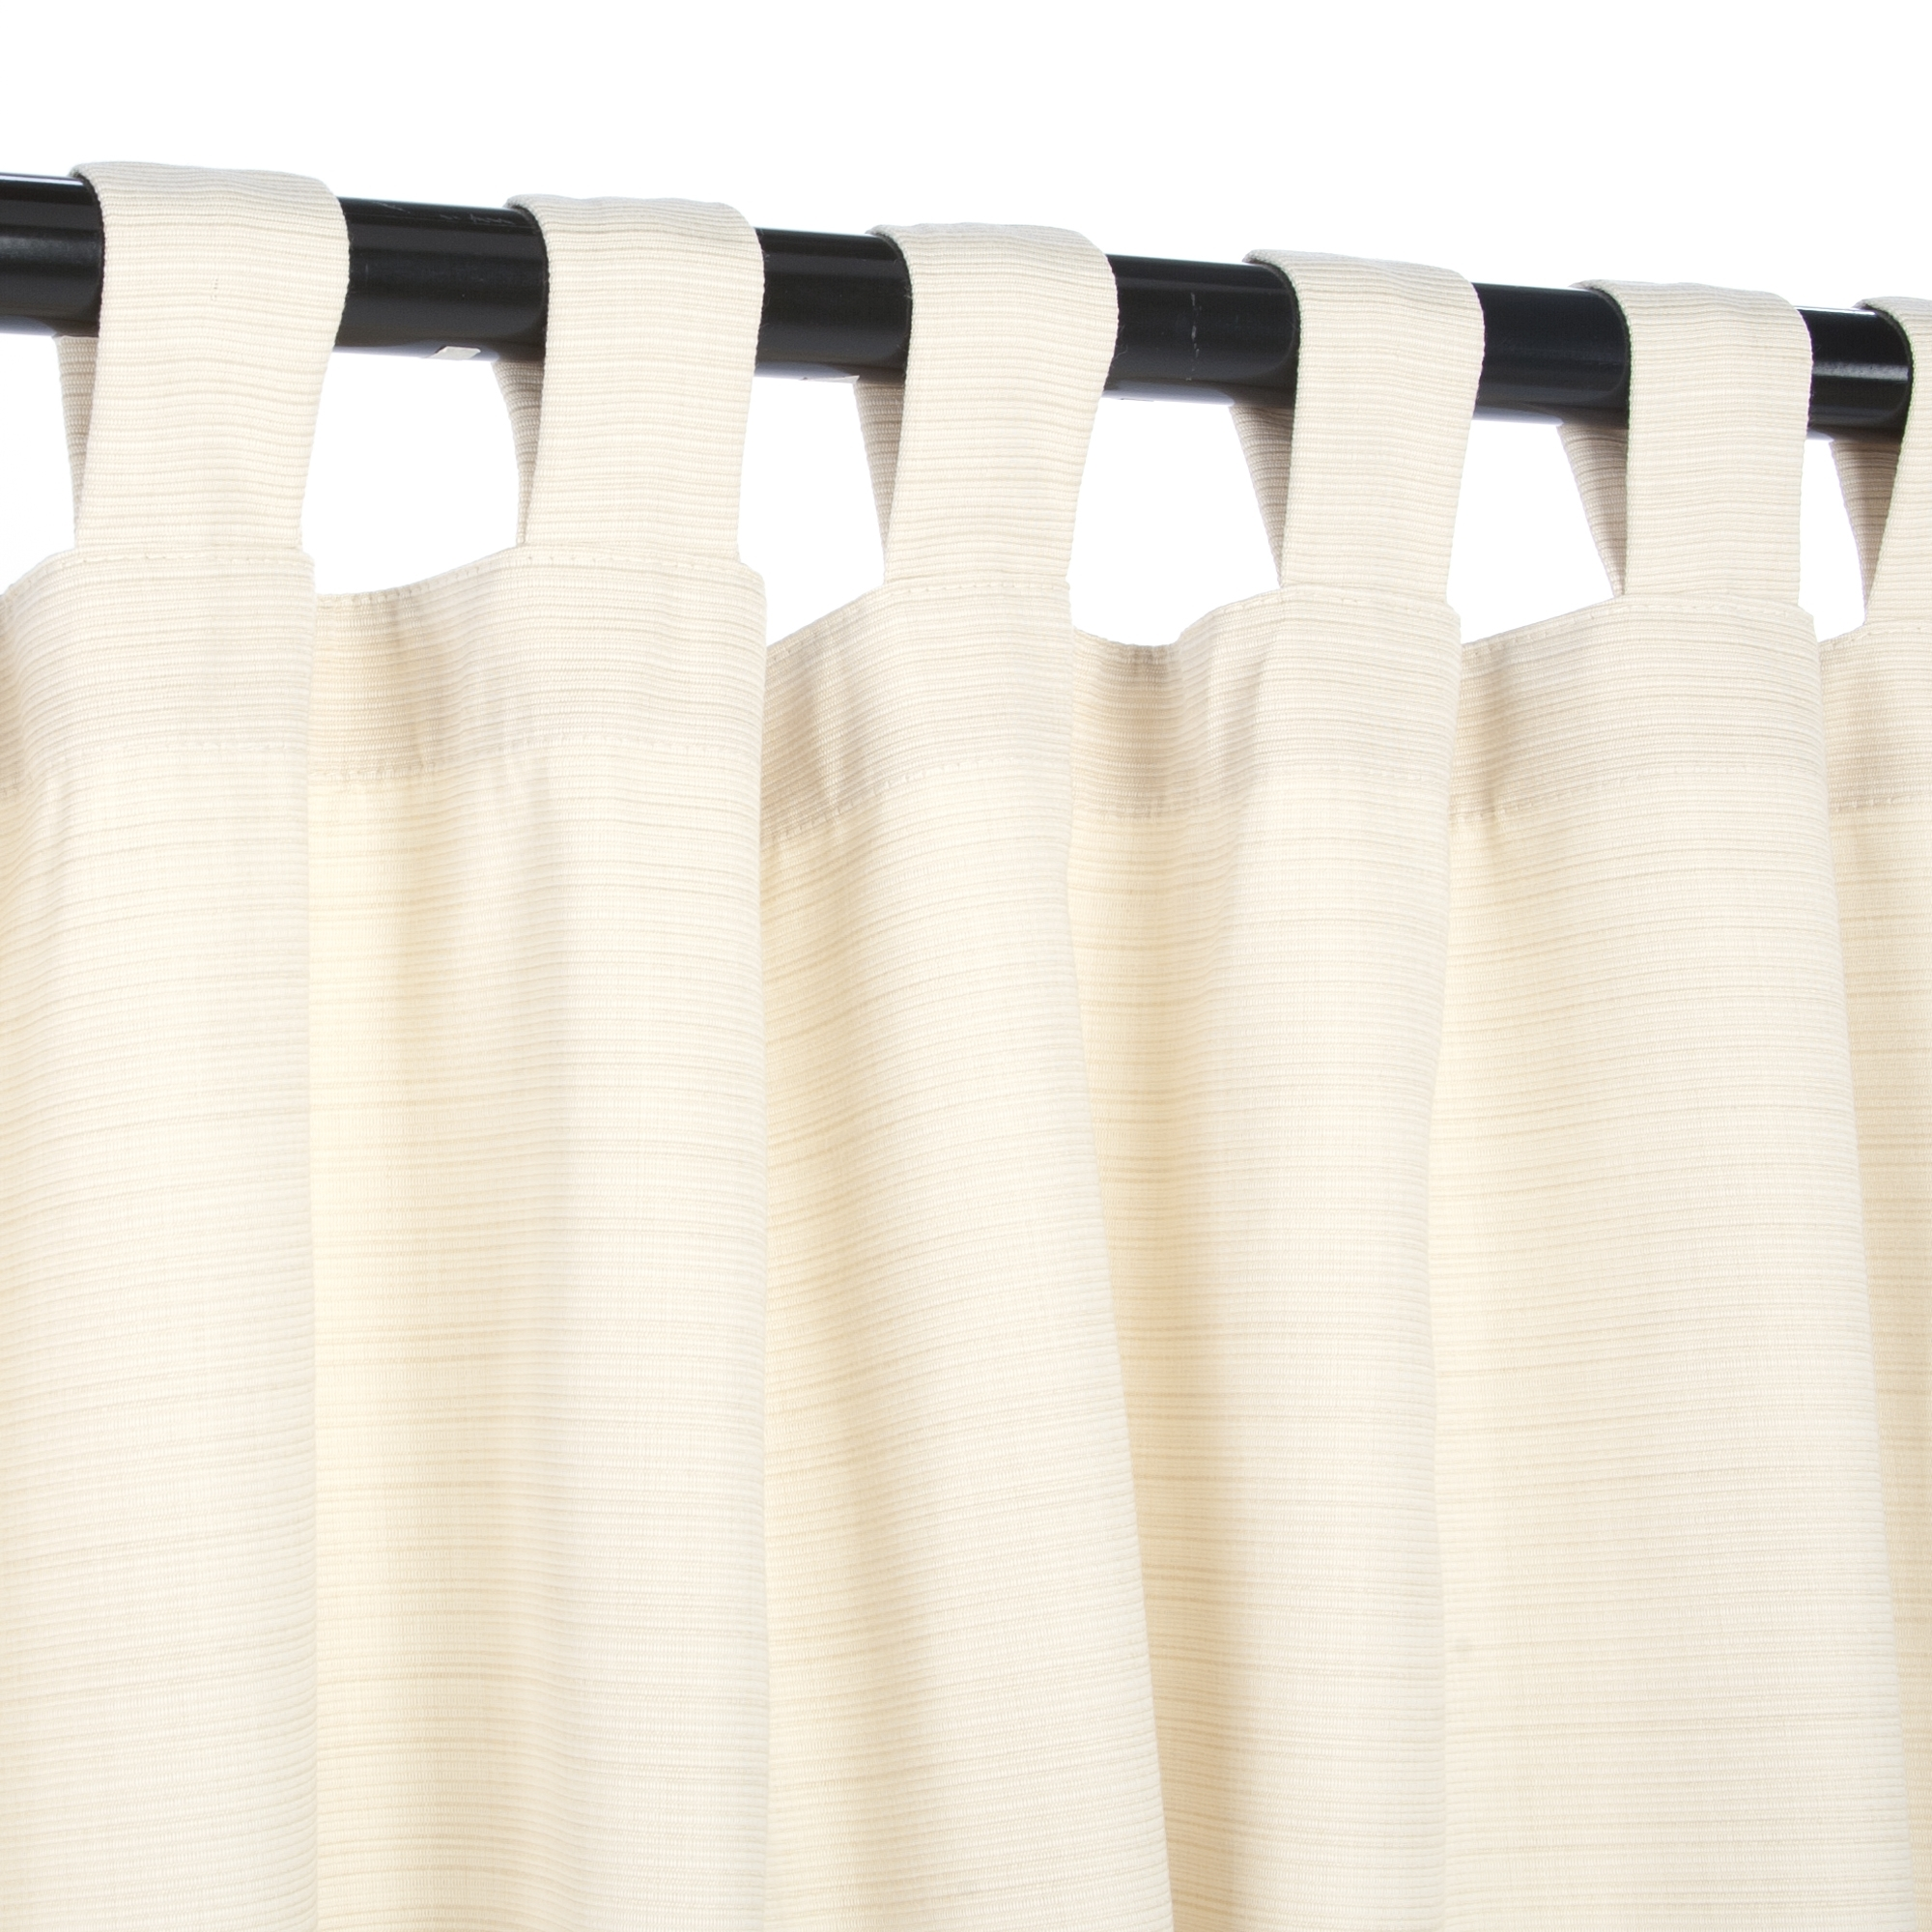 Rosa Beltran Design Customizing Inexpensive Linen Curtains Diy Intended For Plain Linen Curtains (View 12 of 15)